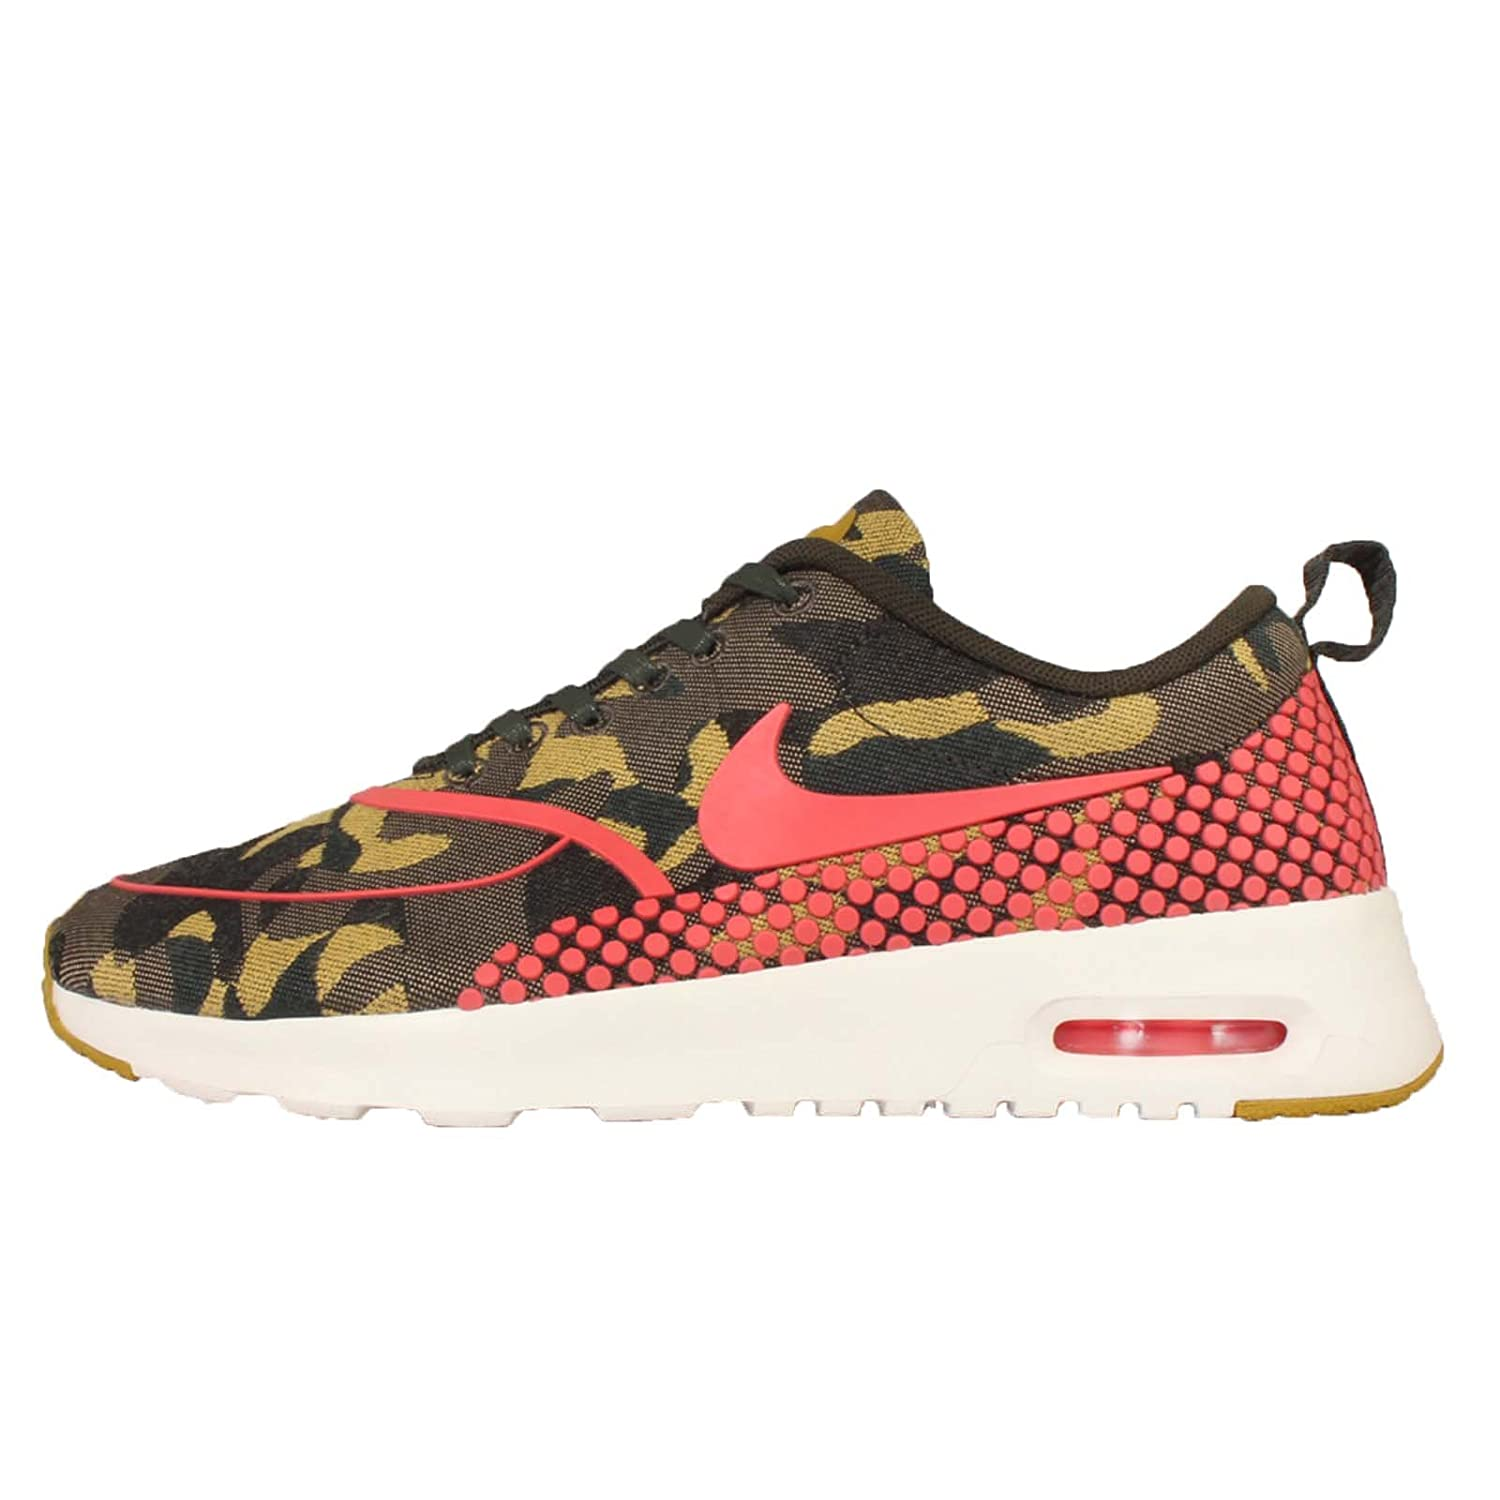 nike air max thea jacquard are they waterproof